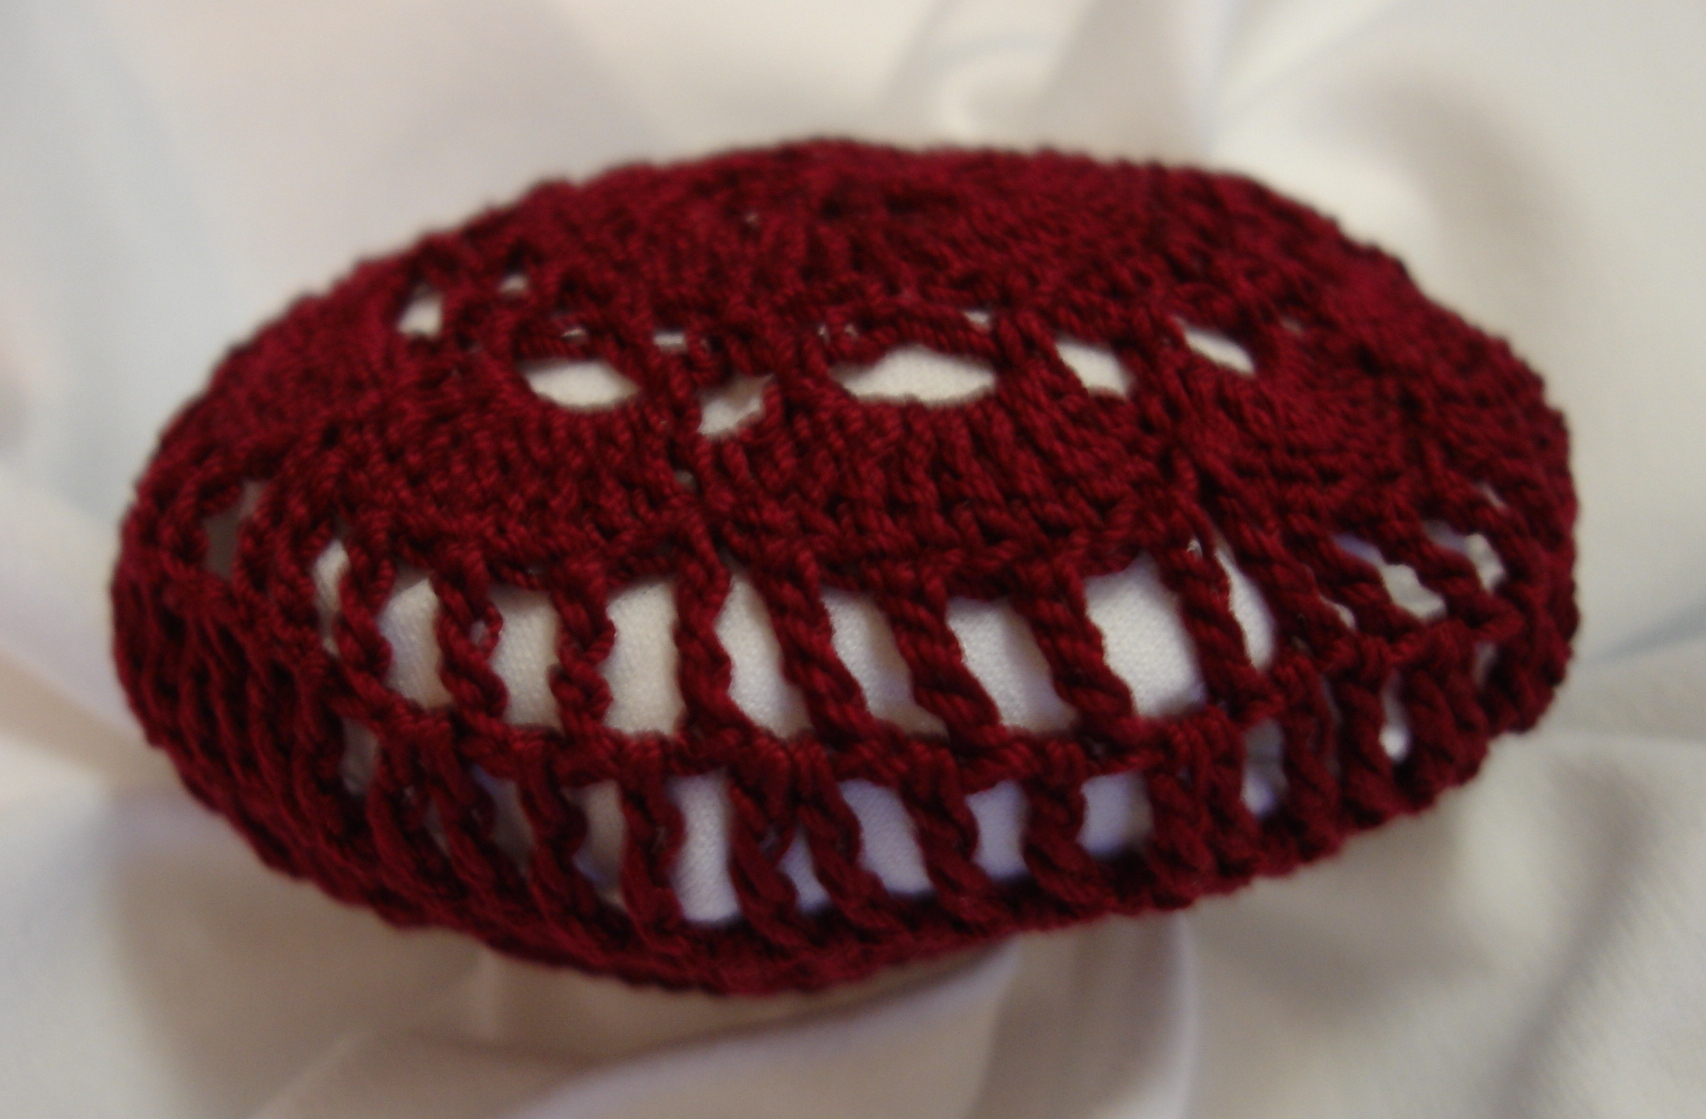 Crochet Hair Cover : Burgundy Crocheted Hair Net Bun Cover Amish Mennonite merrydeals4u